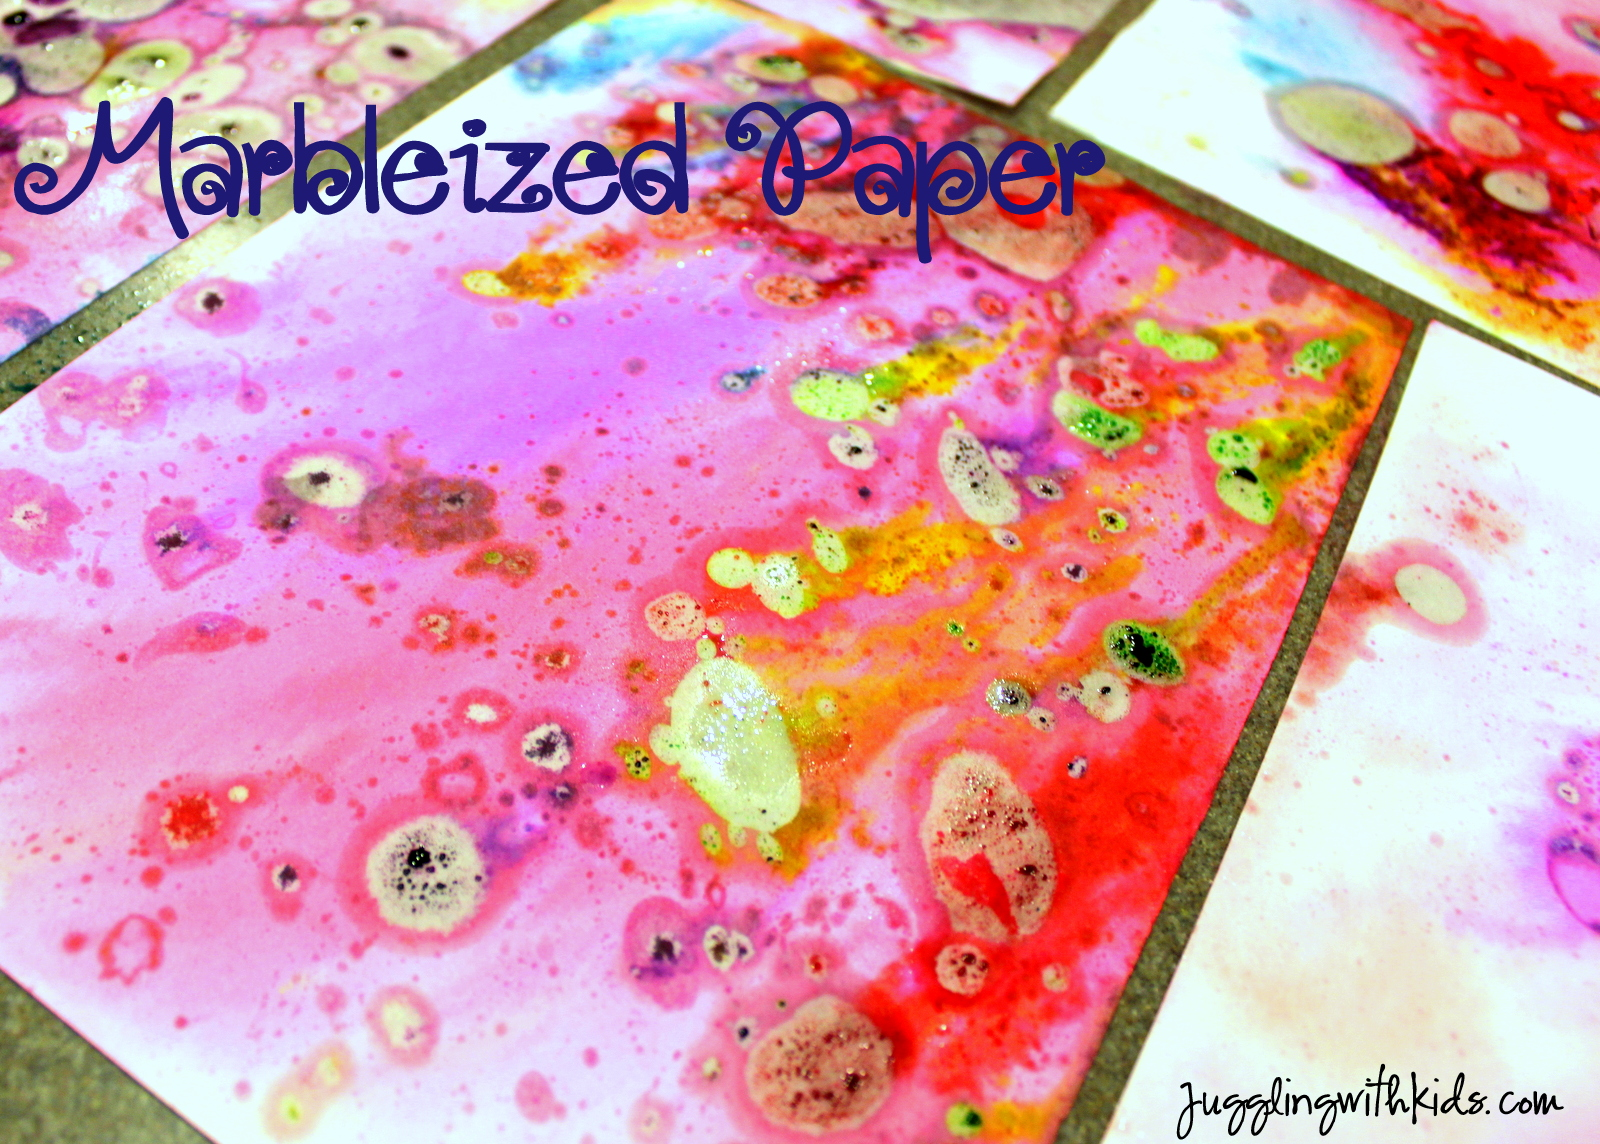 childrens food colouring pictures : Marbleized Paper